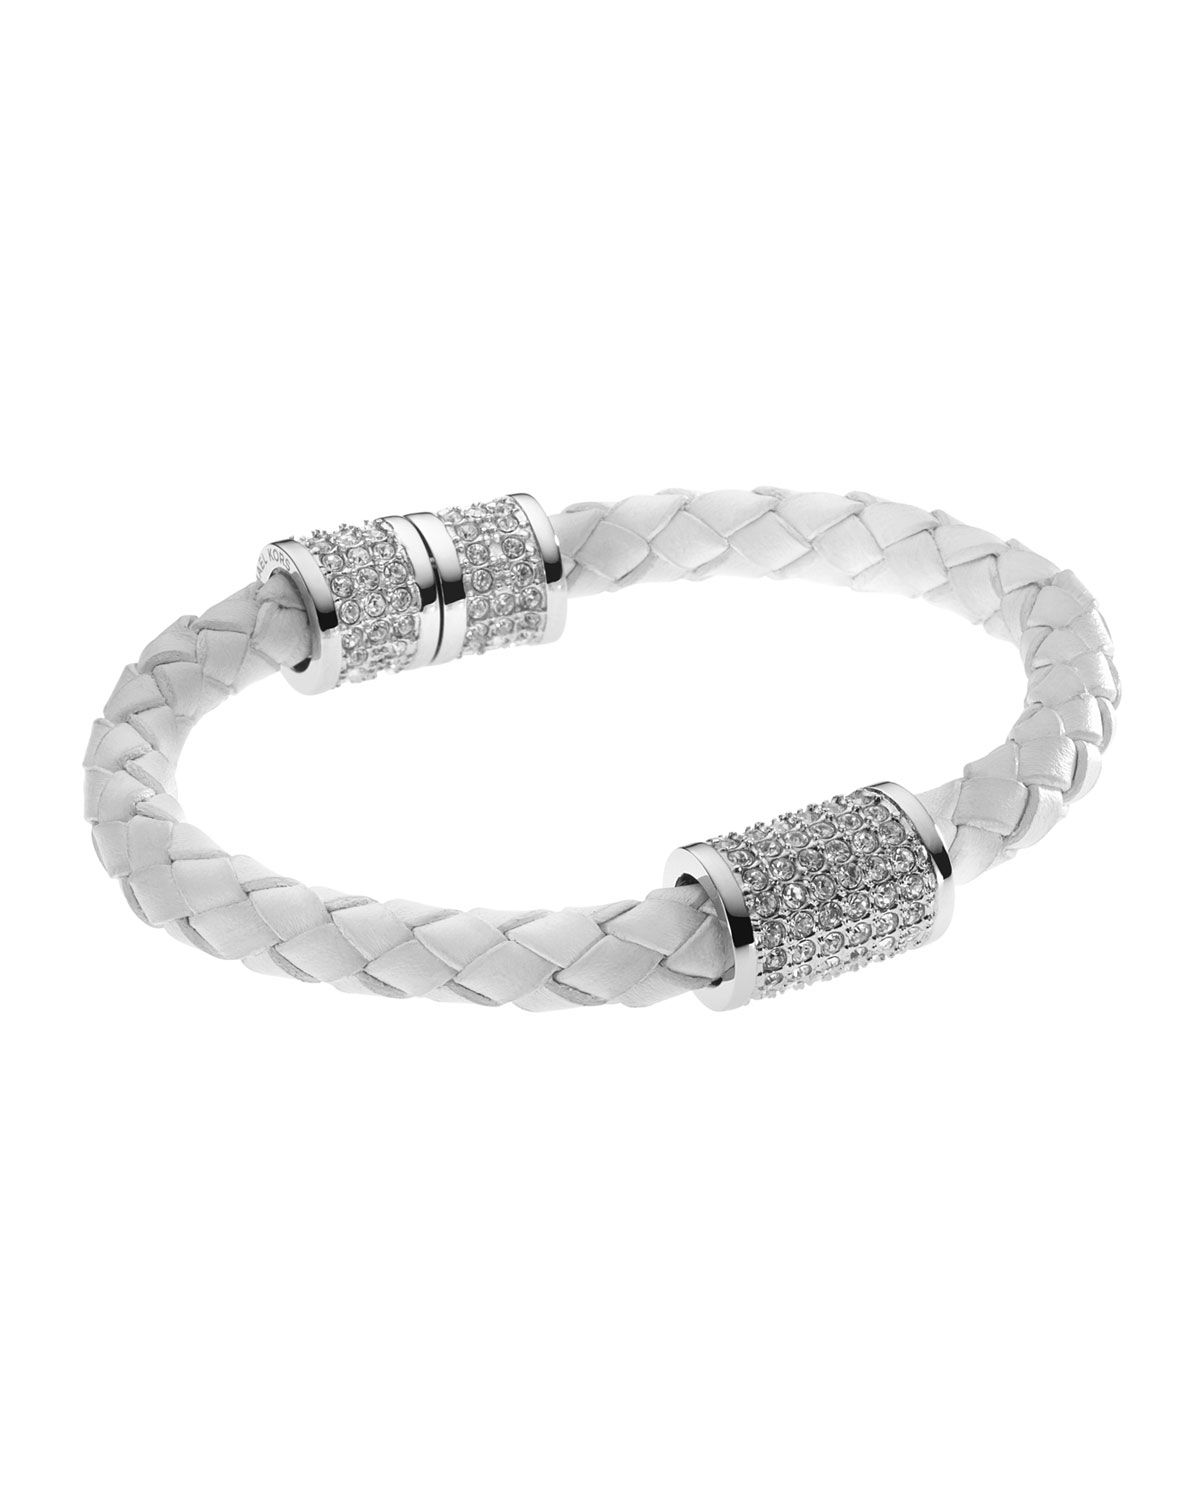 Braided Leather Crystallized Bracelet White Silver Color By Michael Kors At Neiman Marcus